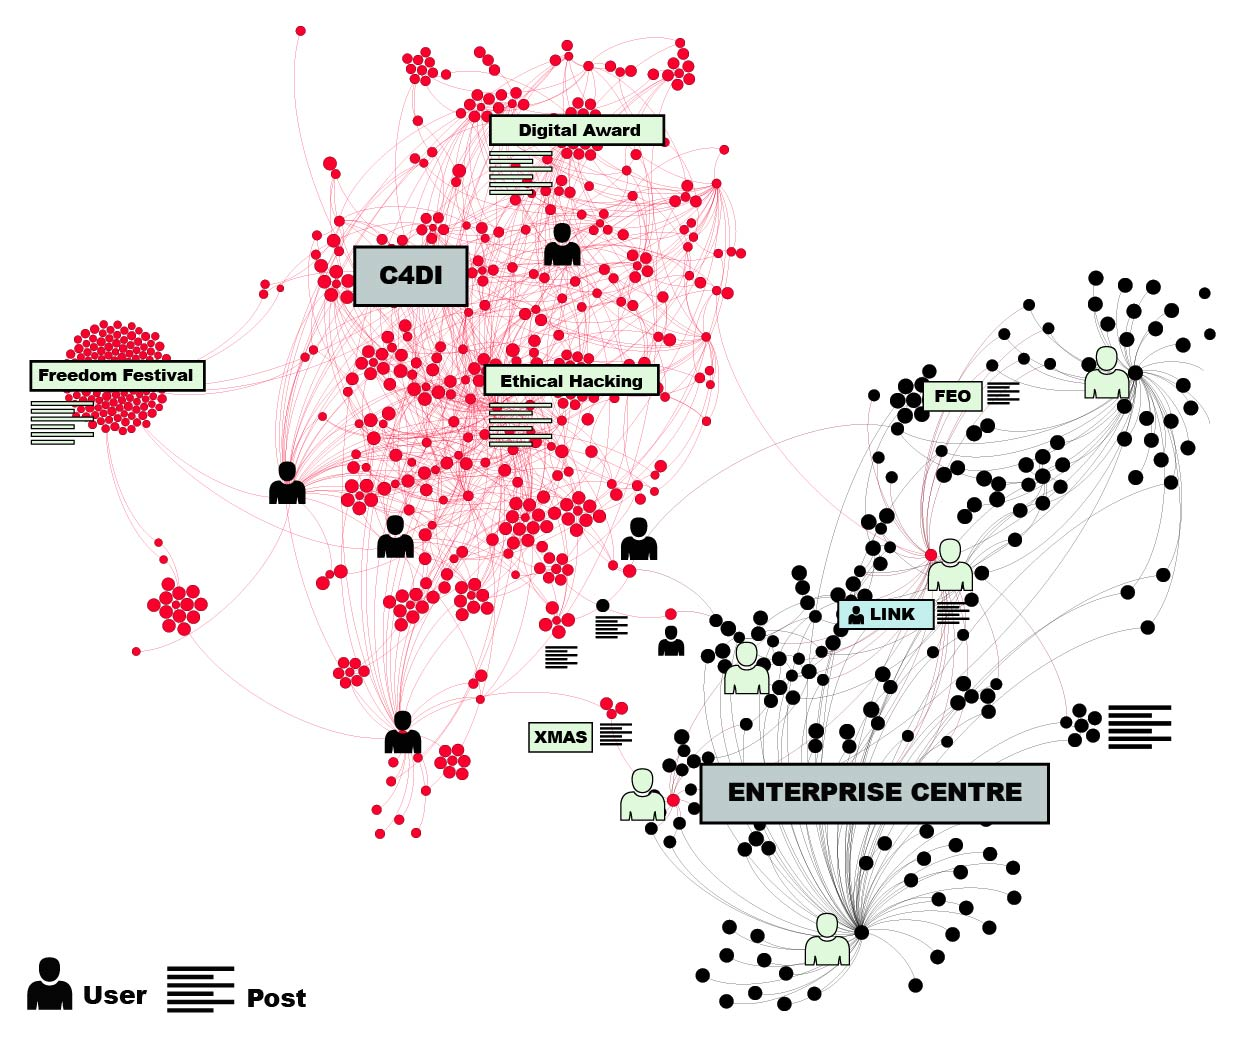 Representation Of Strongly Connected Components On Facebook Networks Diagram Shows Relationship Various To Connect A Digital C4di Enterprise Centre Pages